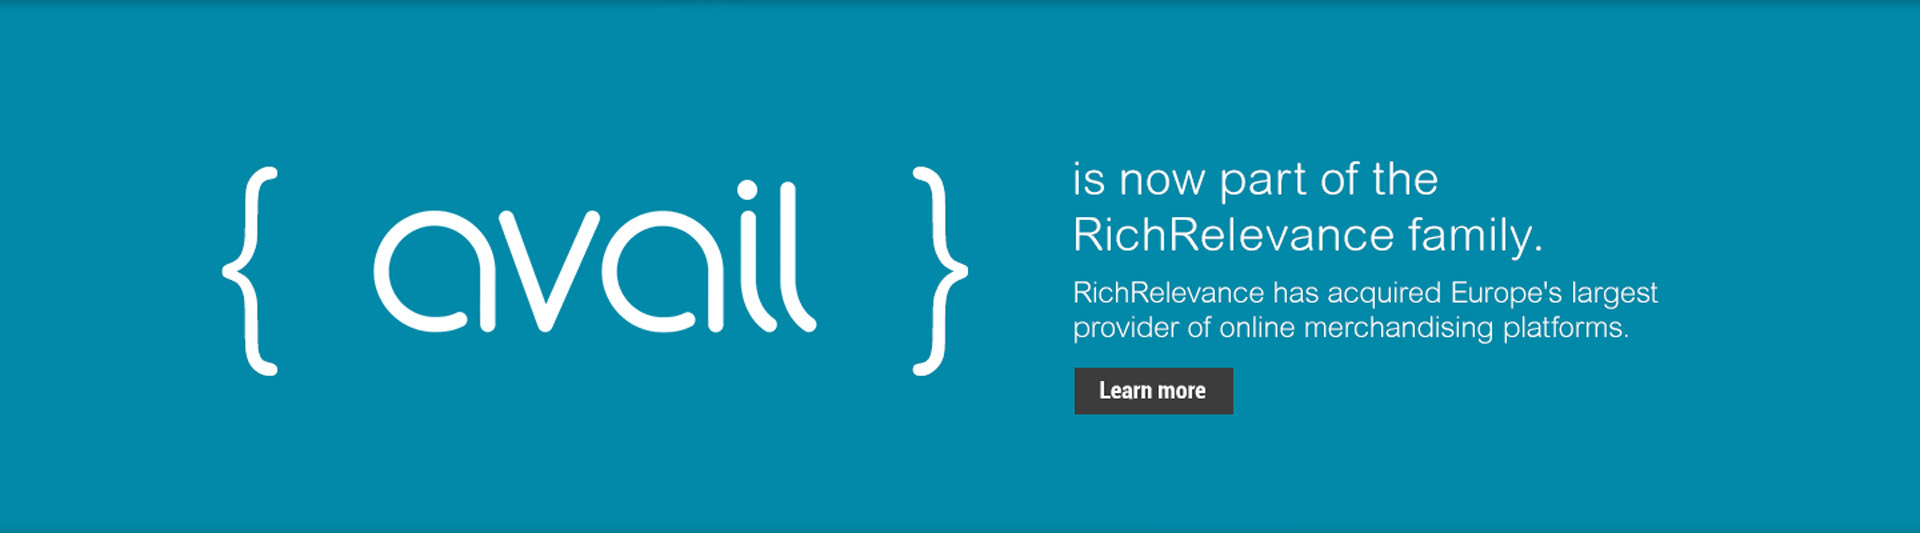 Avail is now part of the RichRelevance family.